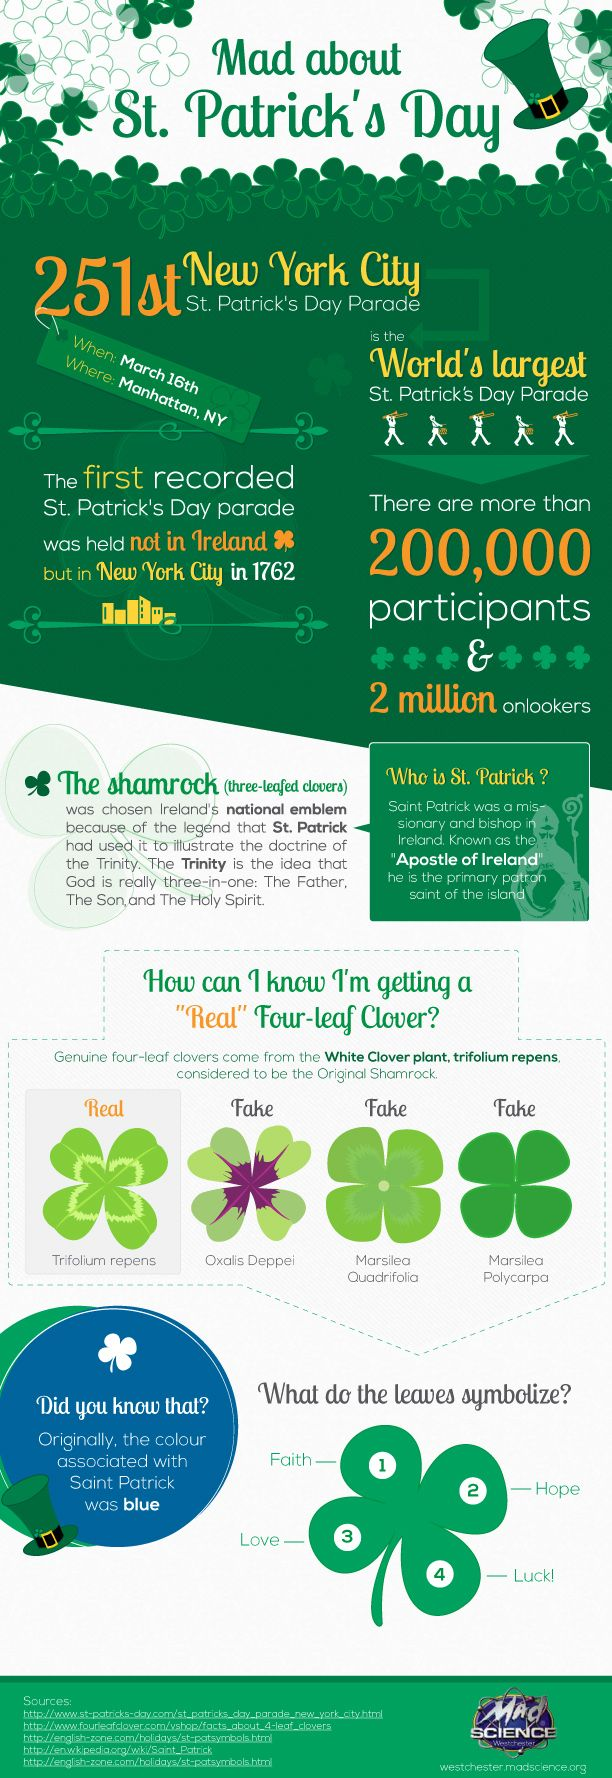 Did you know that this weekend is St.Patrick's Day? Take a look at our fun info graphic to find out some interesting and little known facts about St